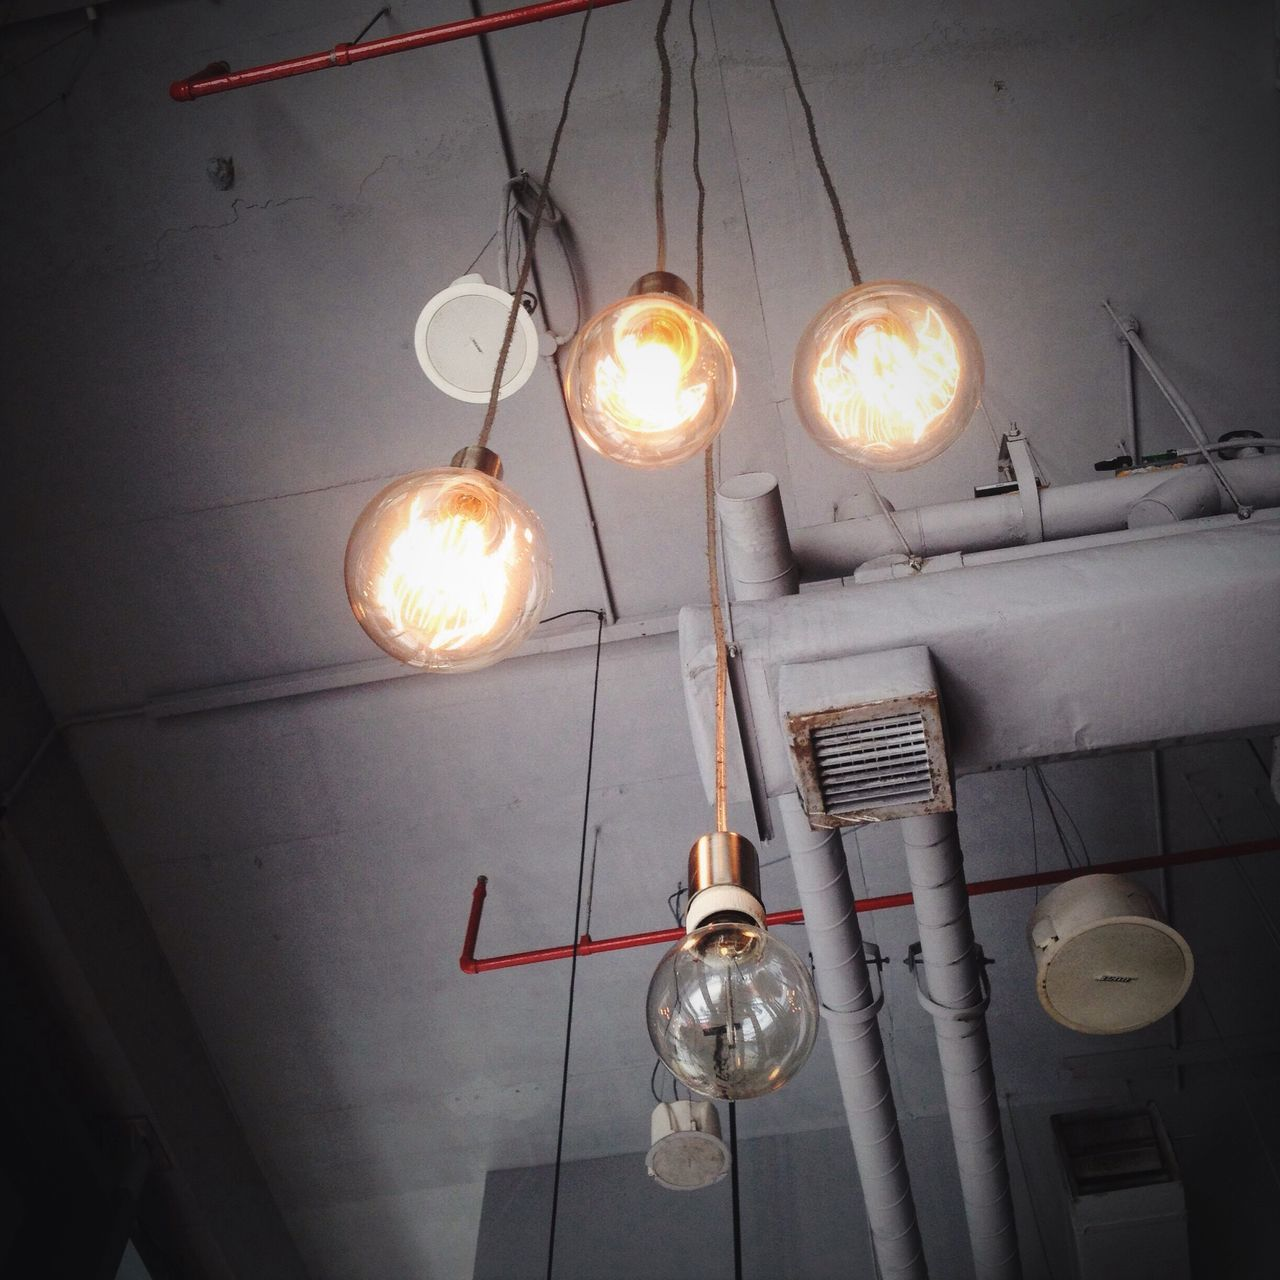 hanging, lighting equipment, electricity, light bulb, low angle view, illuminated, bulb, indoors, electric lamp, no people, electric light, filament, close-up, day